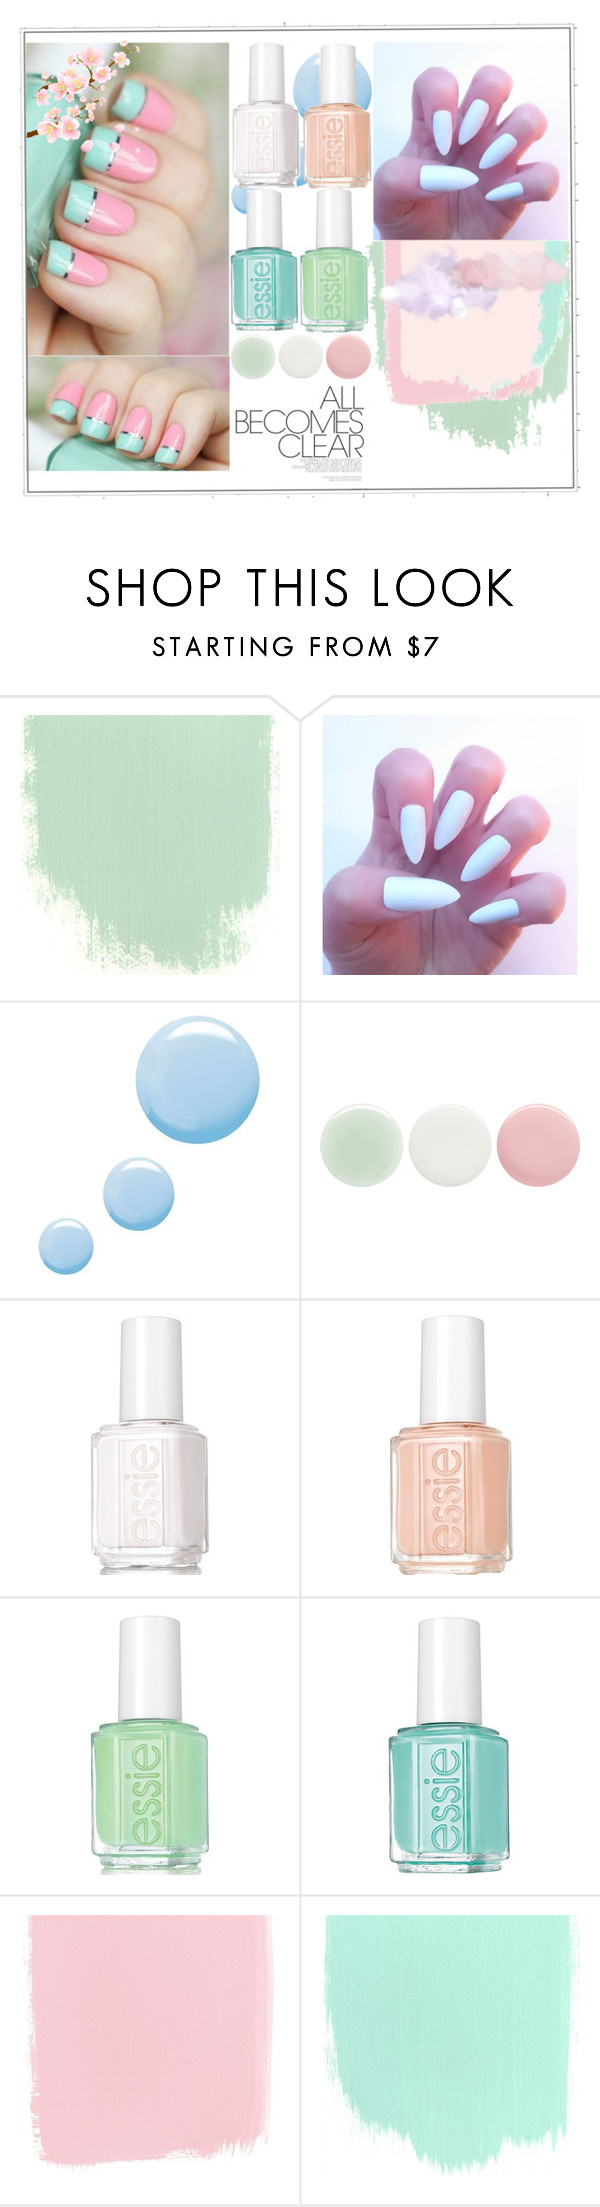 """Pastel Nails II"" by blushingfreckles ❤ liked on Polyvore featuring beauty, Butter London, Topshop, Nails Inc. and Essie"